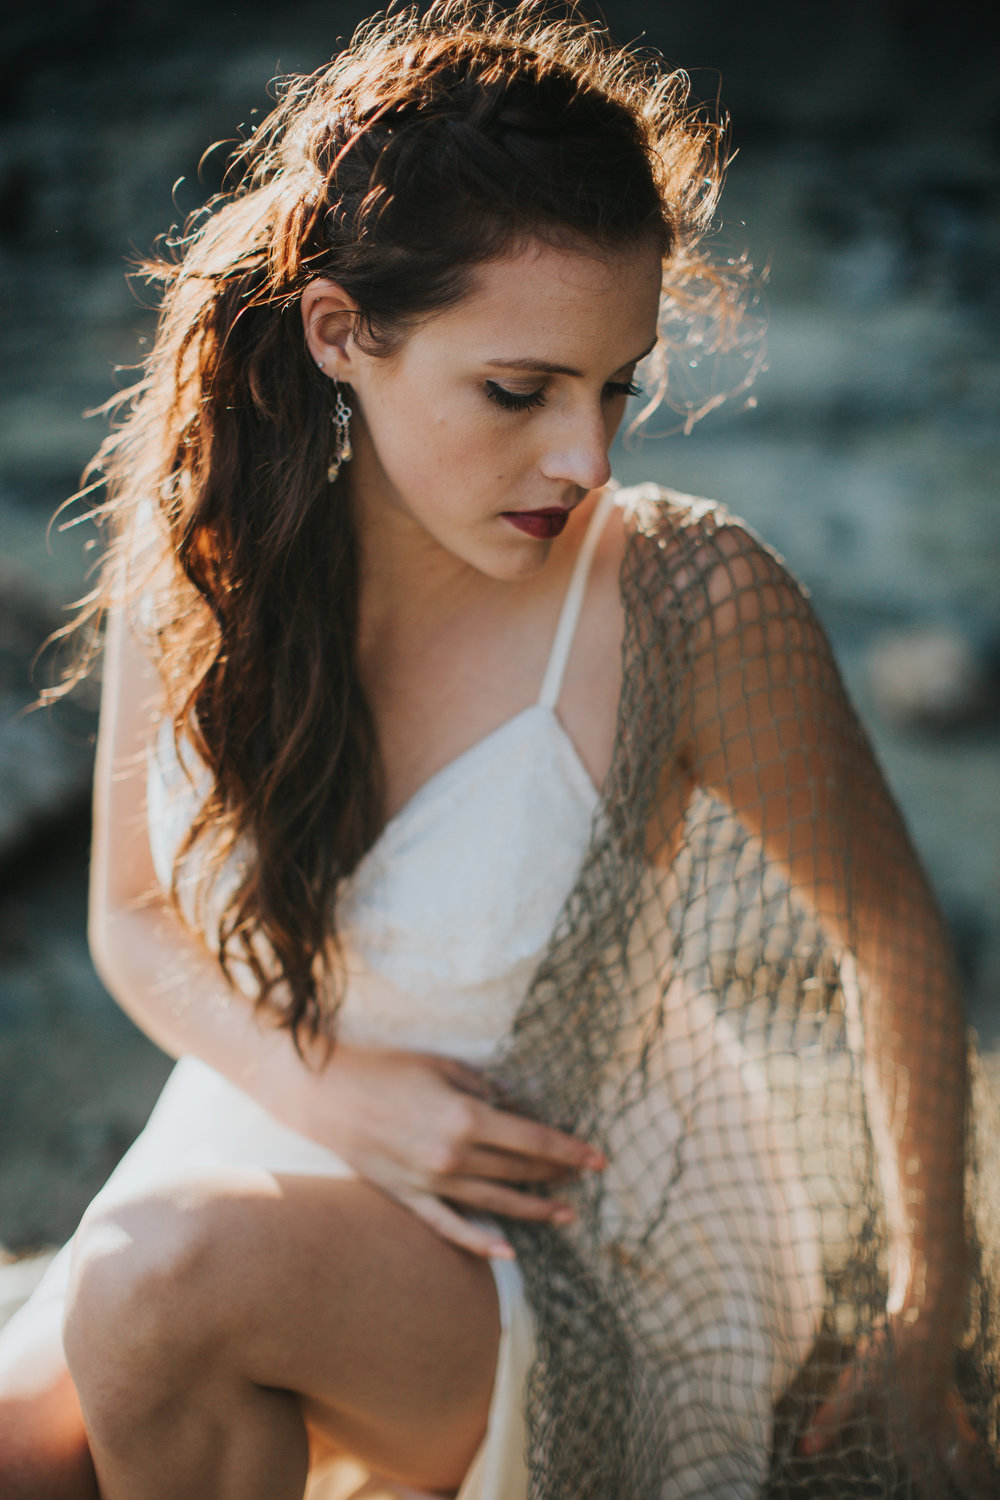 Port-Angeles-Salt-Creek-beach-wedding-bride-PNW-olympic-peninsula-photographer-Kayla-Dawn-Photography-outdoors-golden-hour-dancer-dress (25).jpg